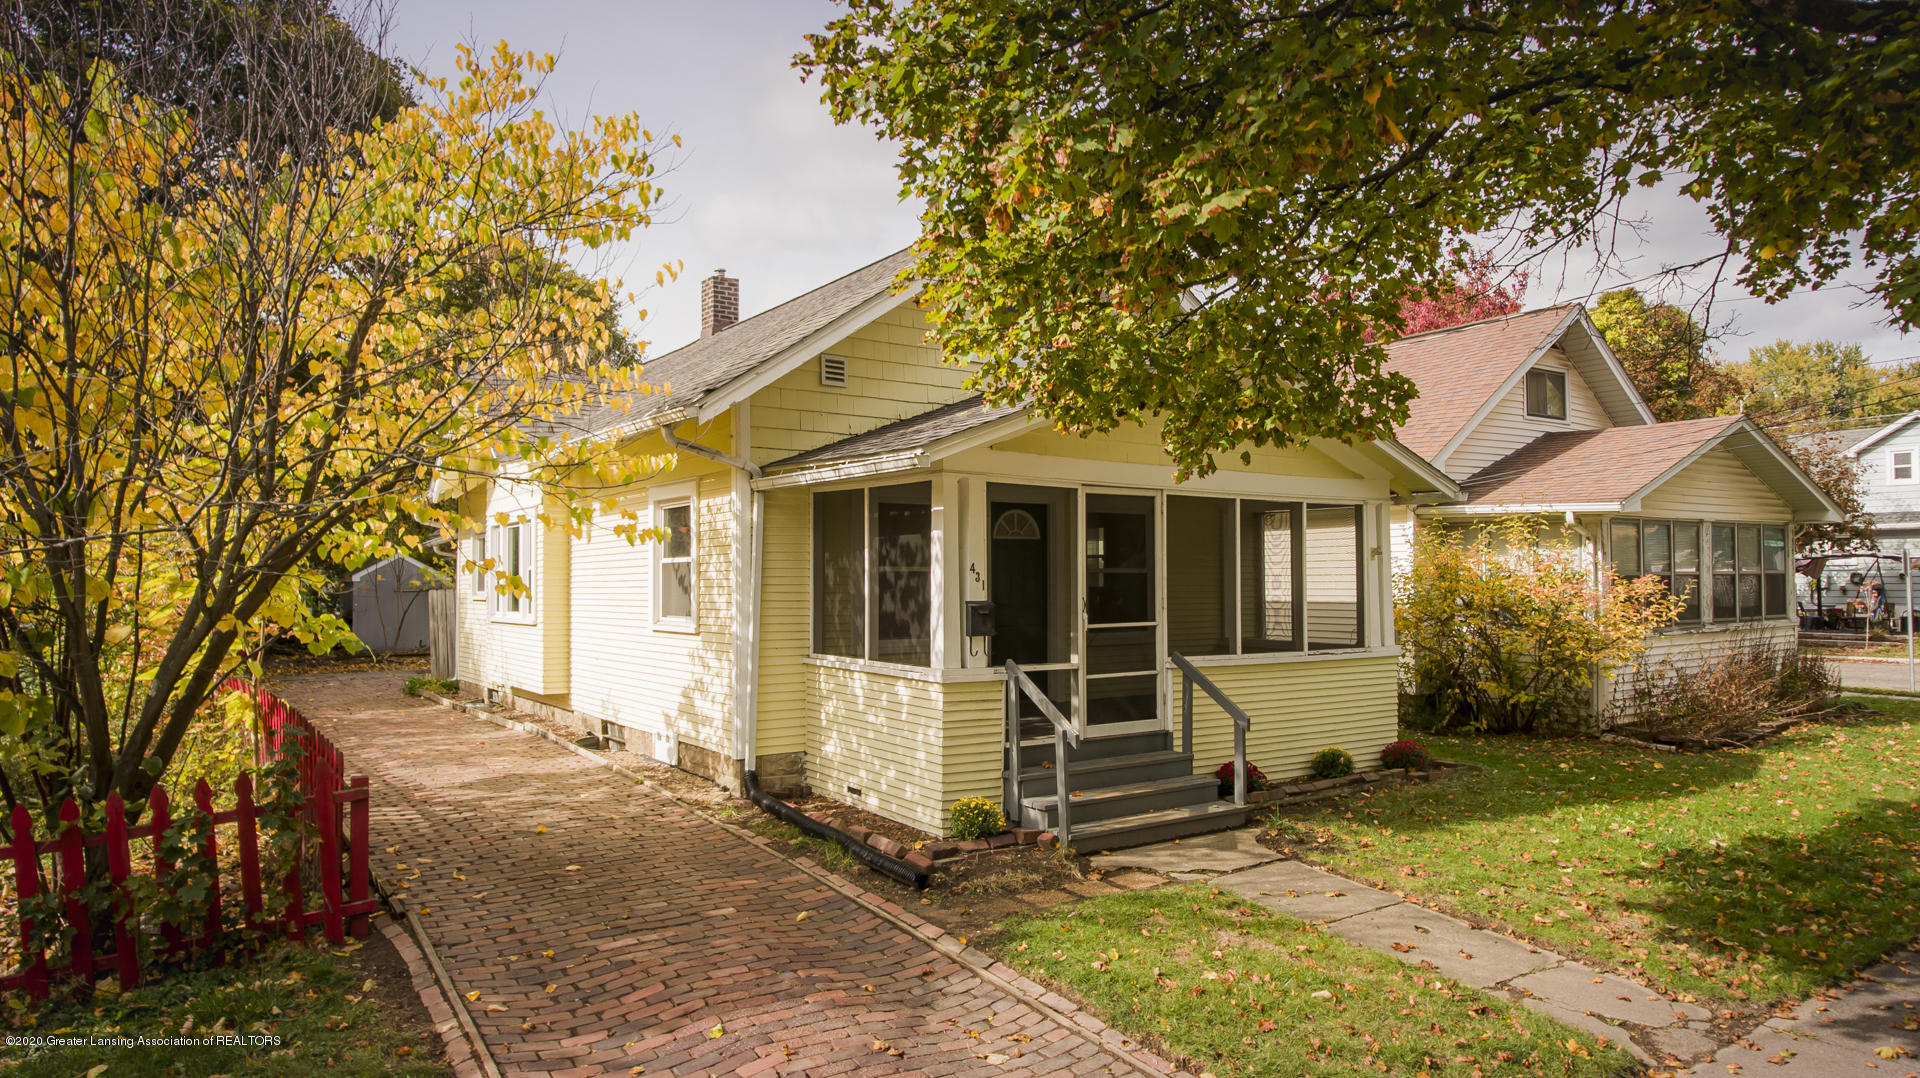 431 N Foster Ave - 431NFoster01 - 1